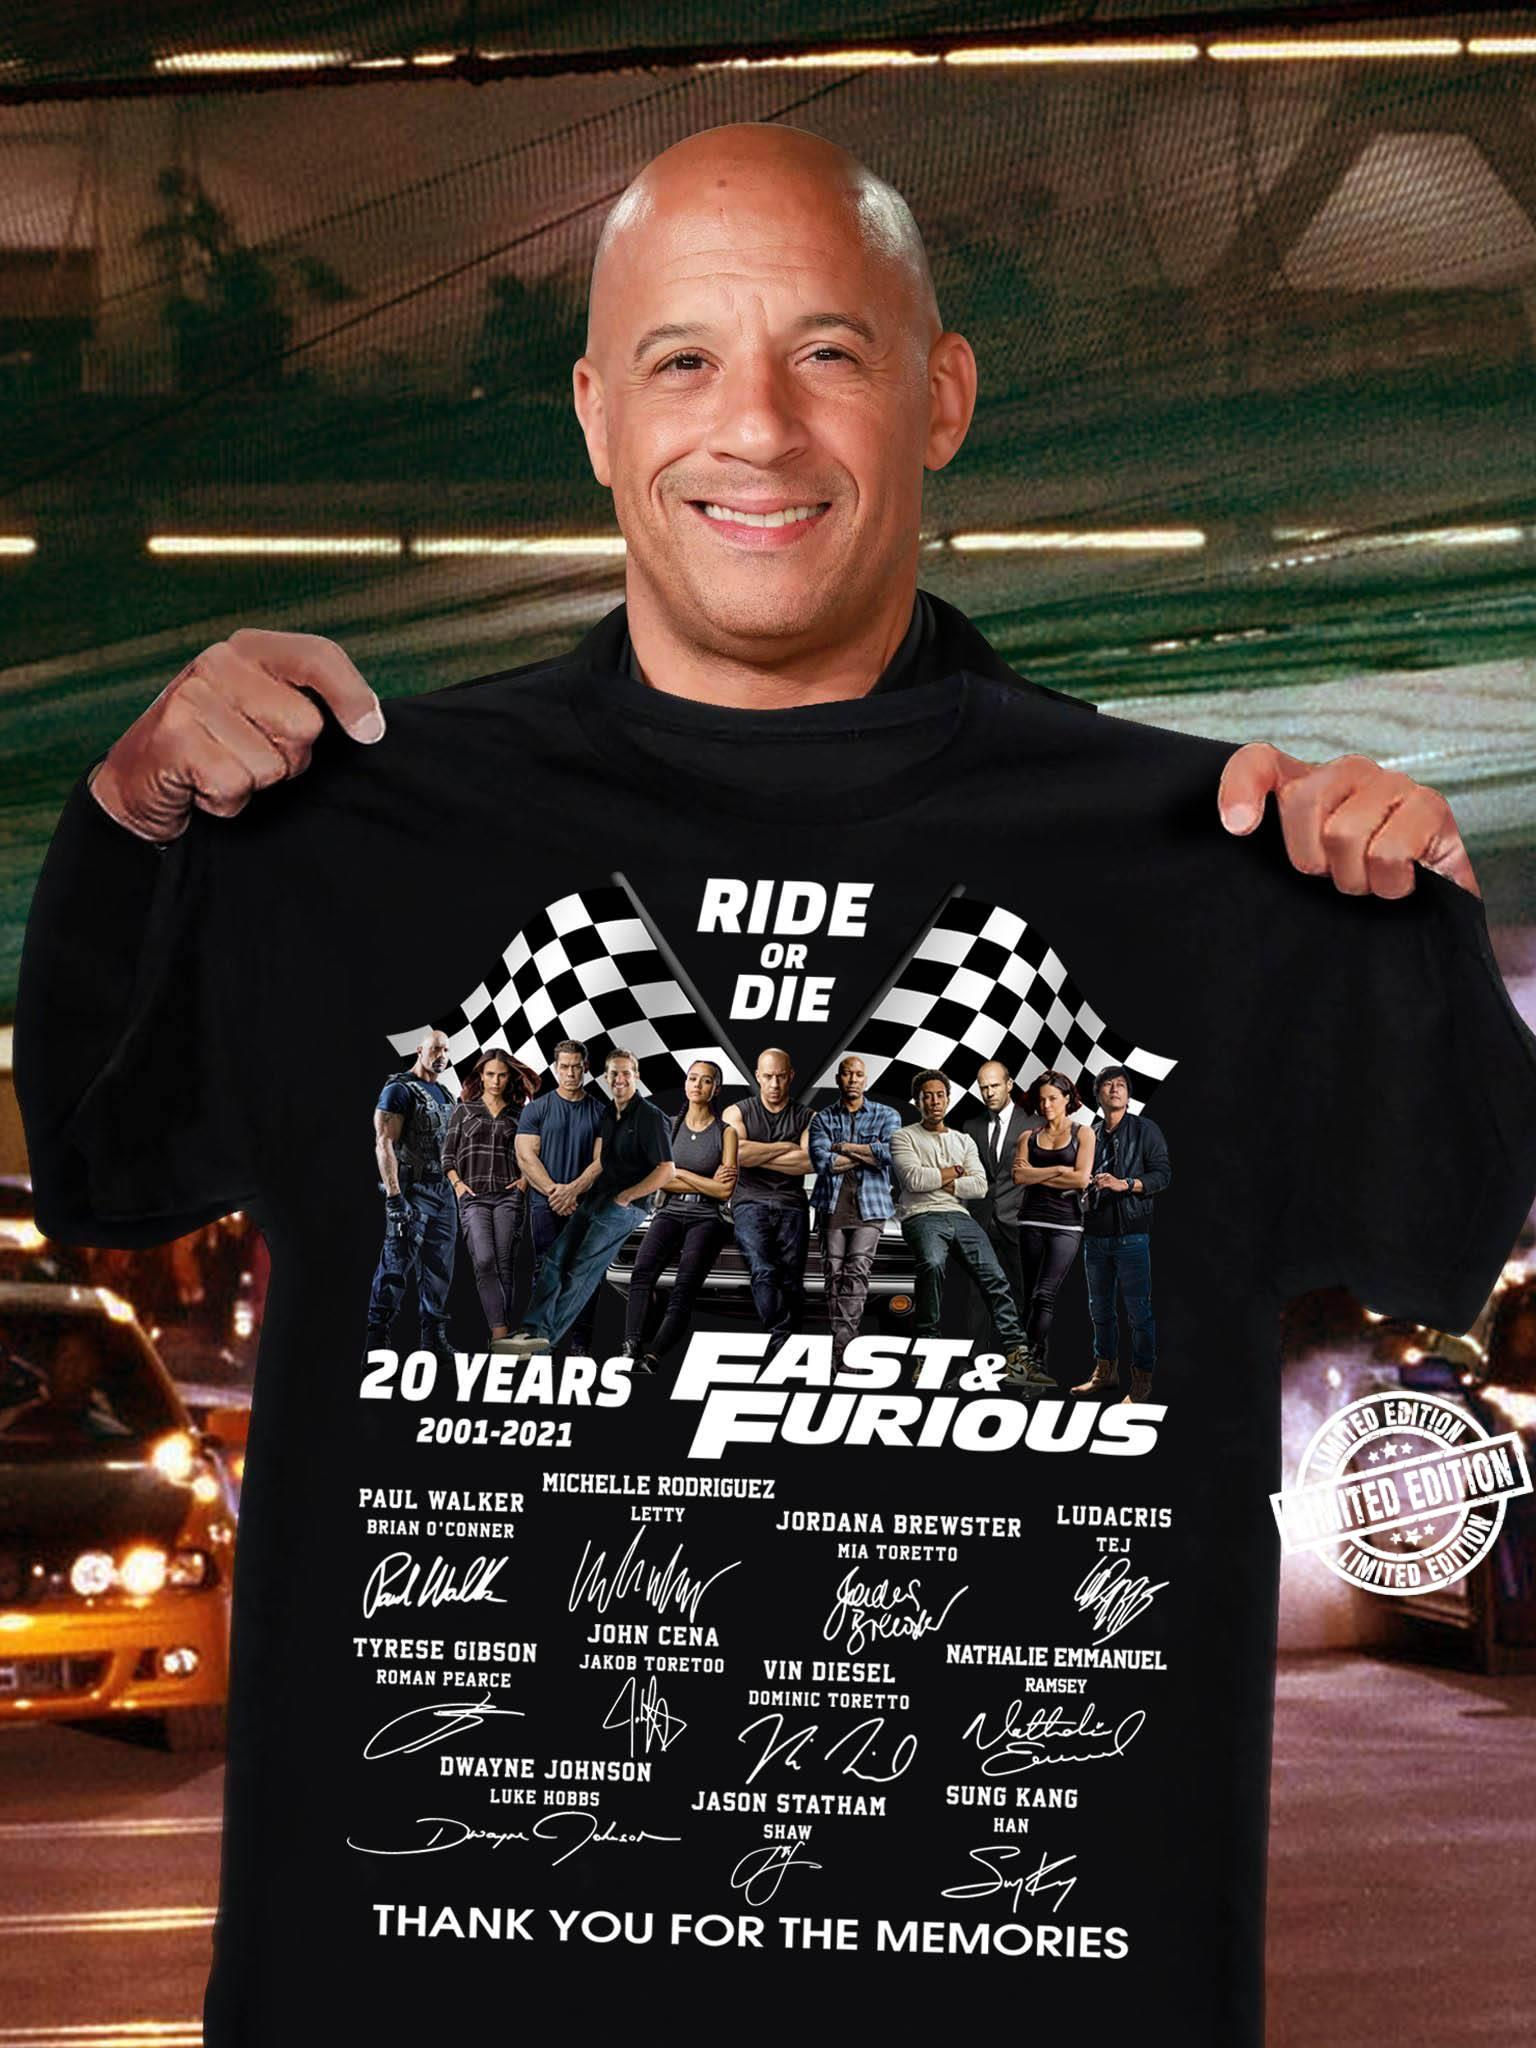 20 years fast and furious 2001-2021 all signature shirt